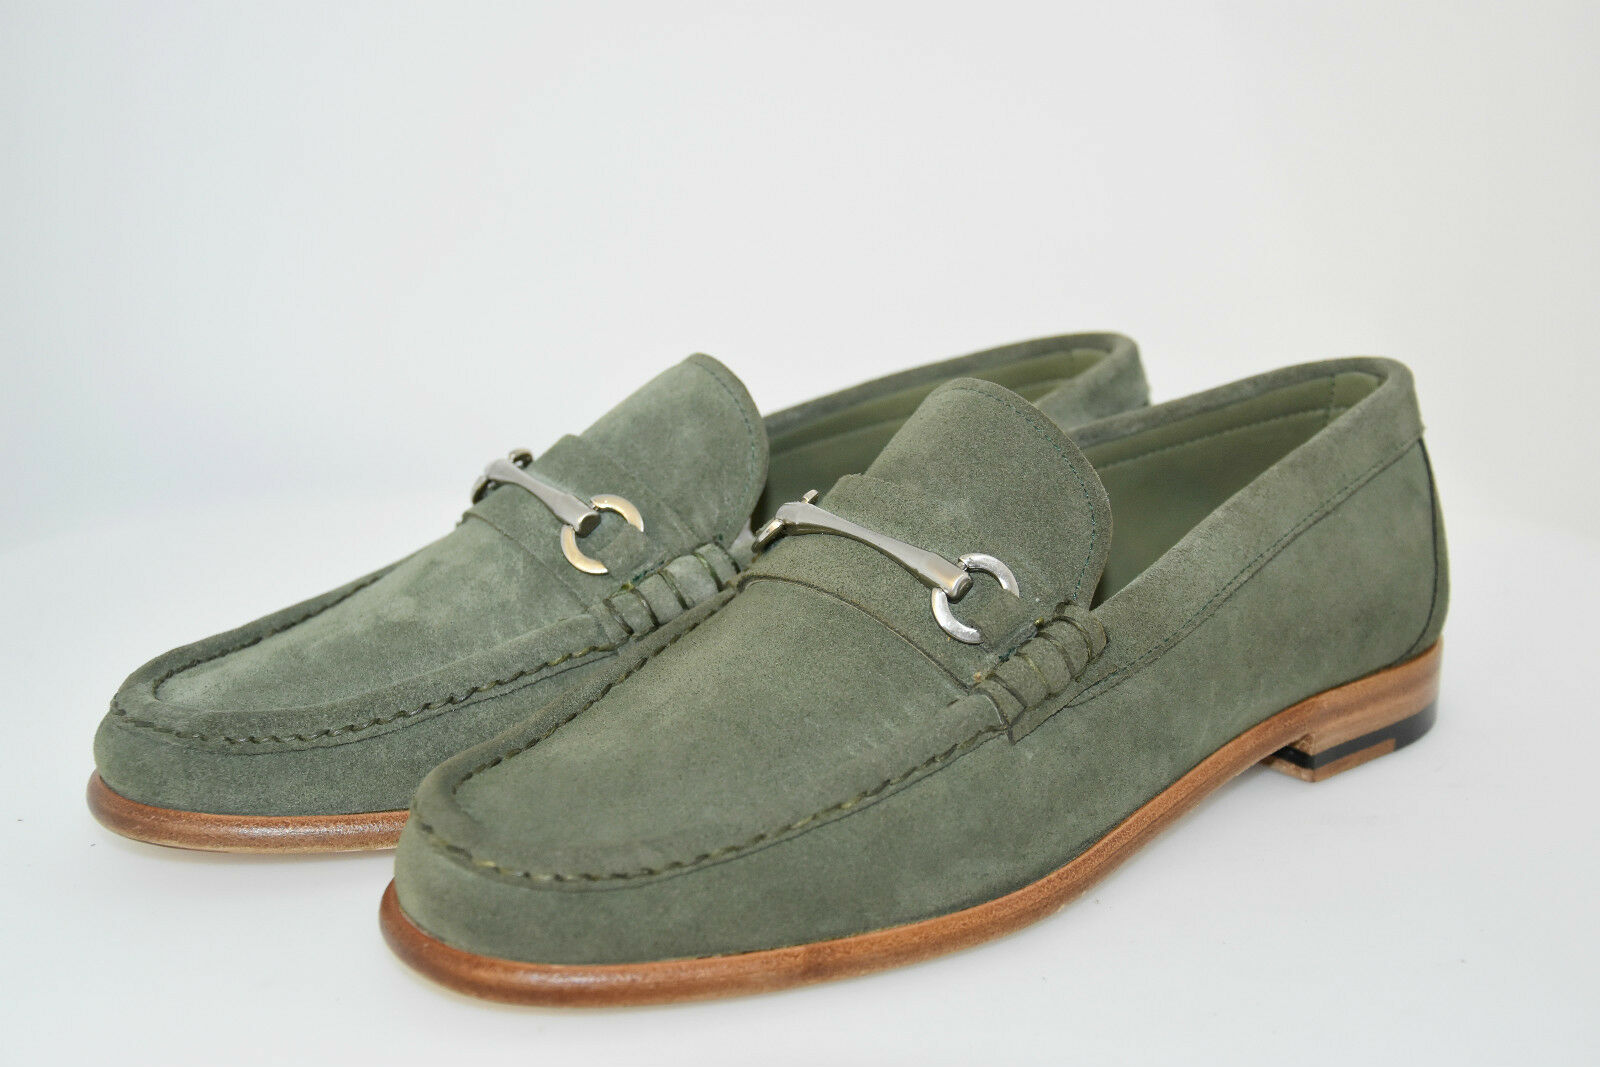 MAN HORSEBIT LOAFER-MOCASSINO-GREEN SUEDE-CAMOSCIO green-LEATHER SOLE